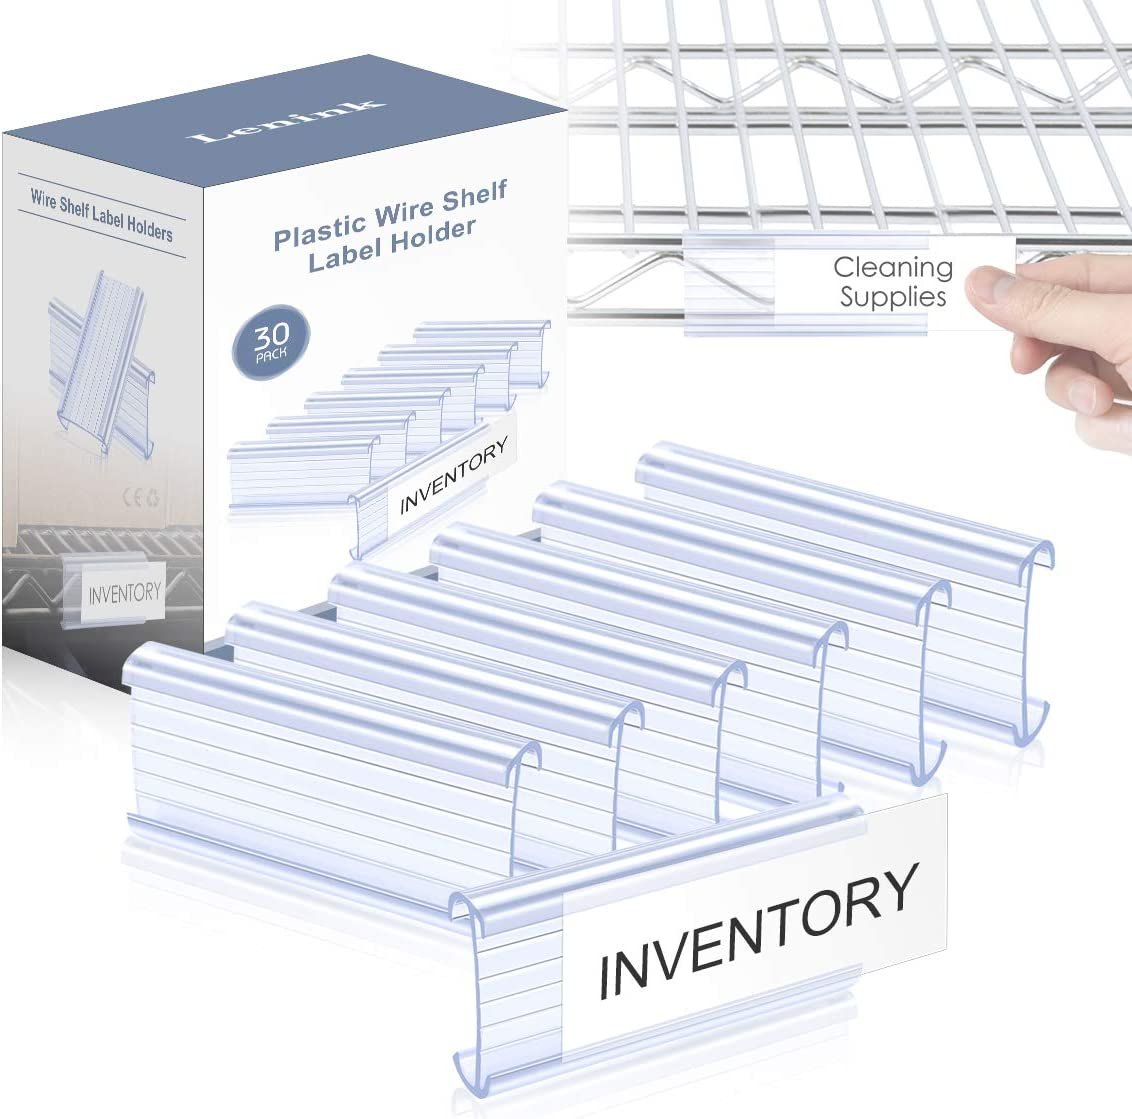 Lenink 30Pcs Wire Shelf Label Holders, Plastic Wire Rack Label Holder Compatible with Metro and Nexel 1-1/4in Shelves, Label Area 3in Lx1.25in H (Label Paper Not Included) : Office Products